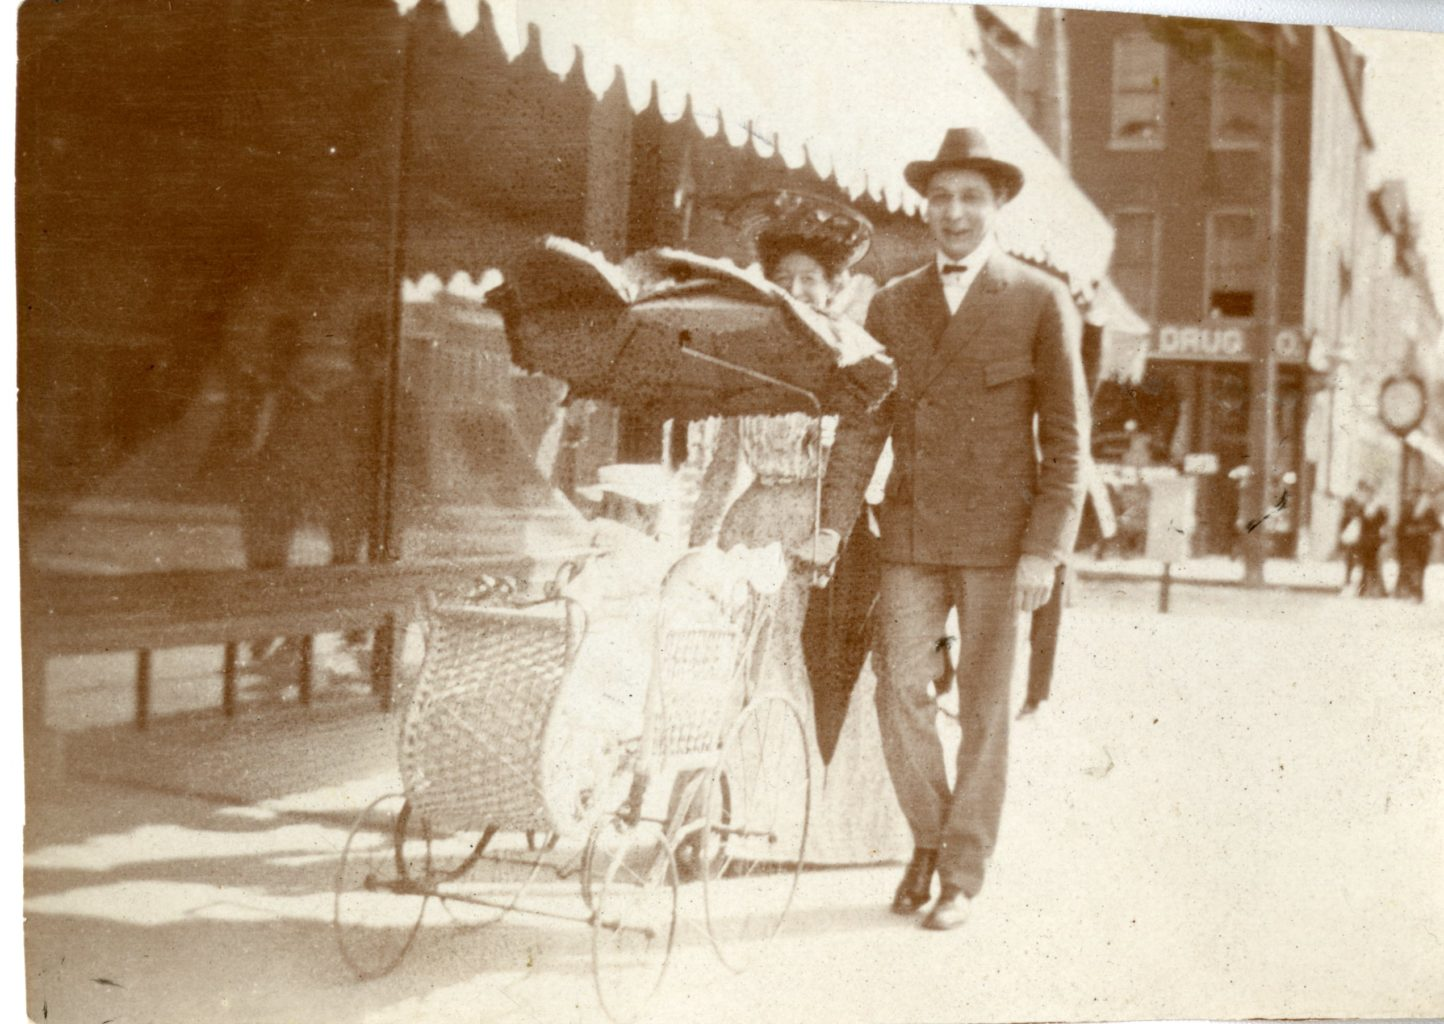 A husband and wife push their baby in a stroller down the sidewalk in a city.